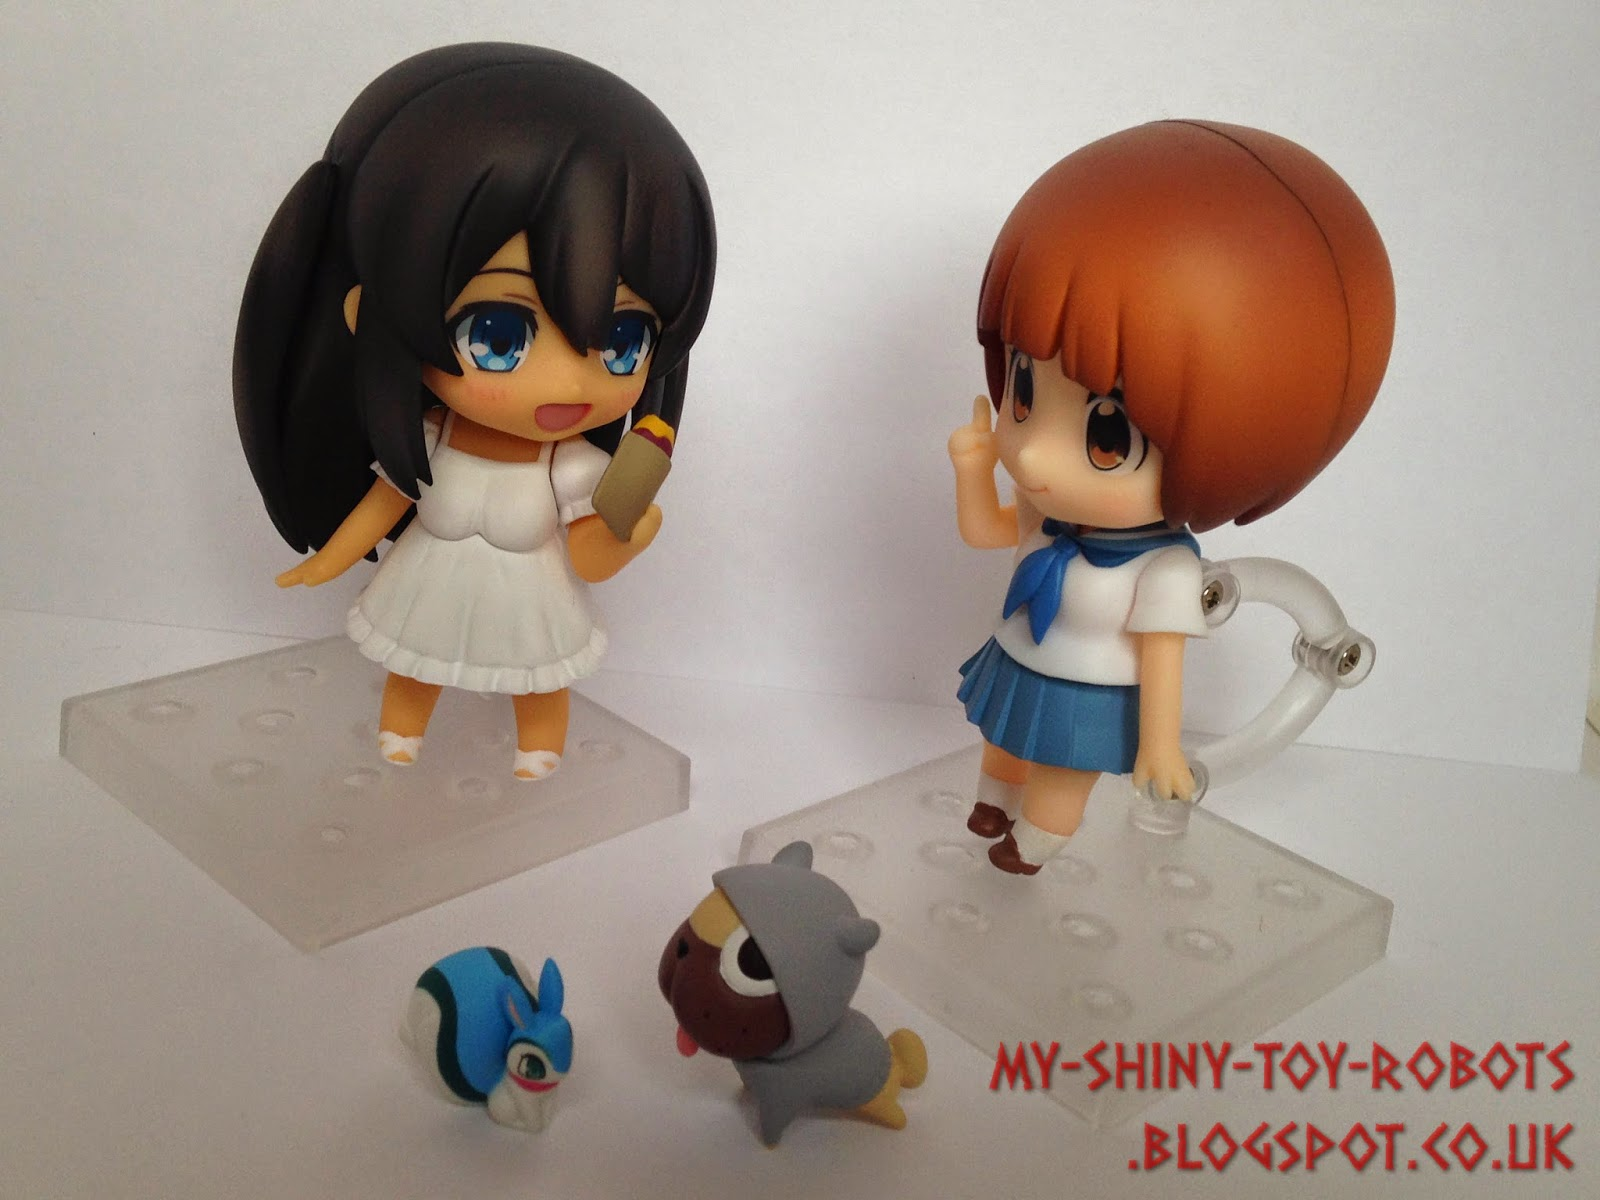 Meeting other Nendoroids